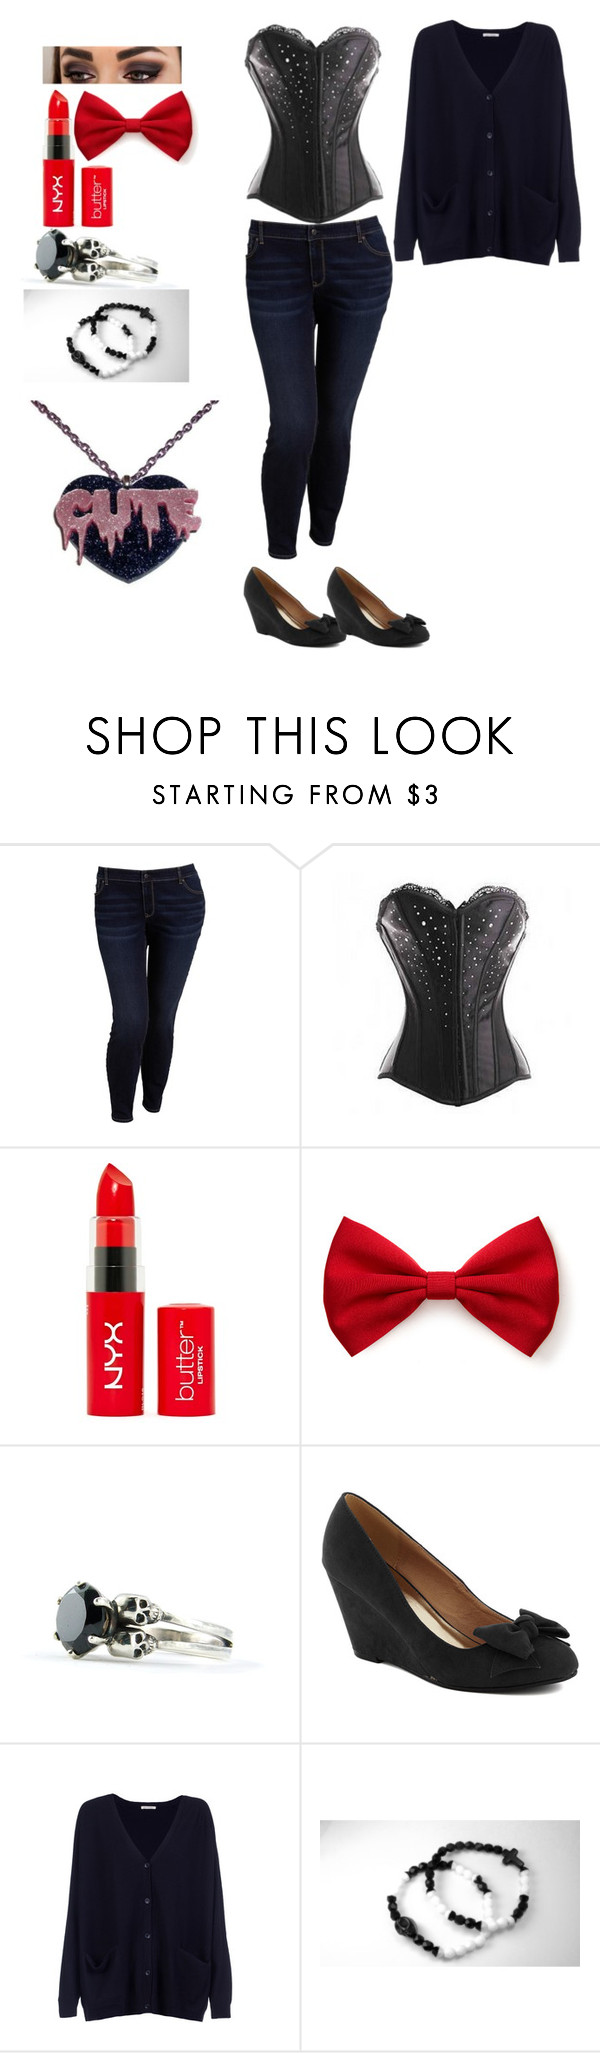 """""""Passage Outfit"""" by plus-size-princess ❤ liked on Polyvore featuring Old Navy, Forever 21, Hostess, American Vintage, women's clothing, women, female, woman, misses and juniors"""